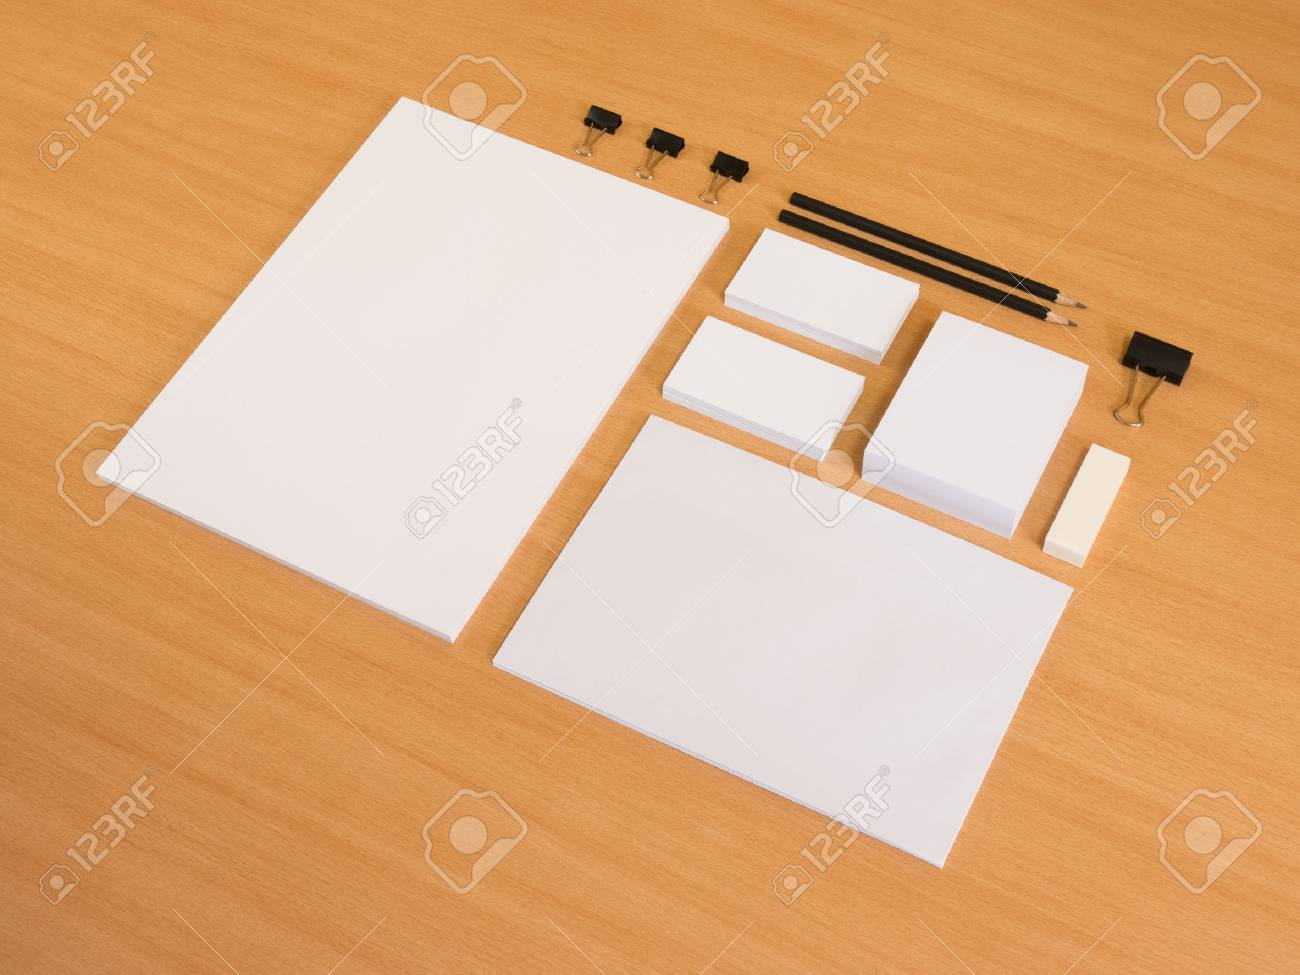 Blank stationery set on wood background a4 paper business cards blank stationery set on wood background a4 paper business cards envelopes stock photo reheart Gallery